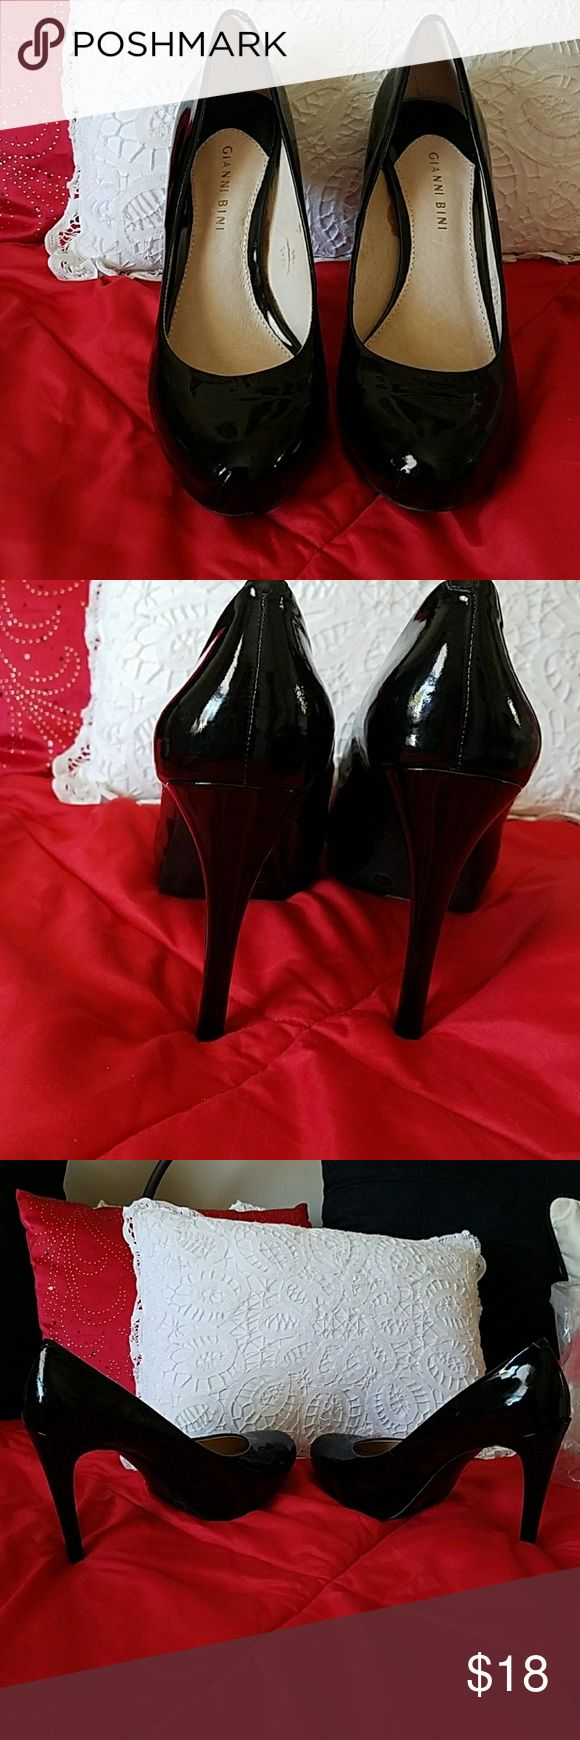 Gianni Bini black patent high heel pumps 10 new Gianni Bini black patent  leather high heel pumps size 10 bought new with box but look like they may have been worn once on the house looking at stickers on the bottom. Excellent just don't fit me Gianni Bini Shoes Heels